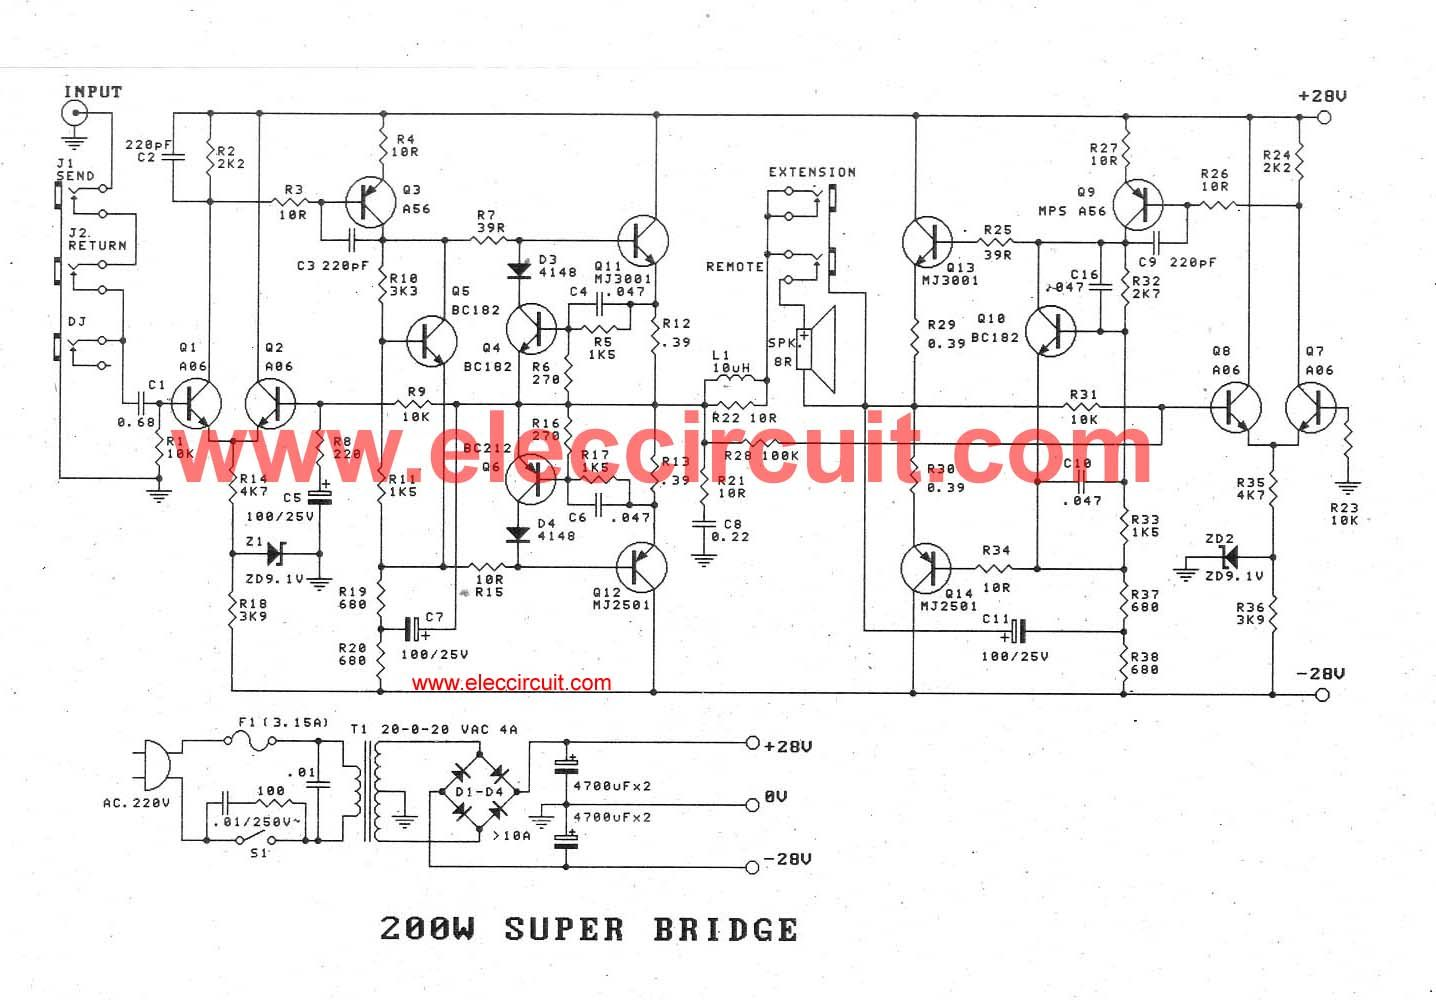 it is guitar amplifier circuit diagram with pcb layout power output rh pinterest nz circuit diagram drawing tool circuit diagram definition